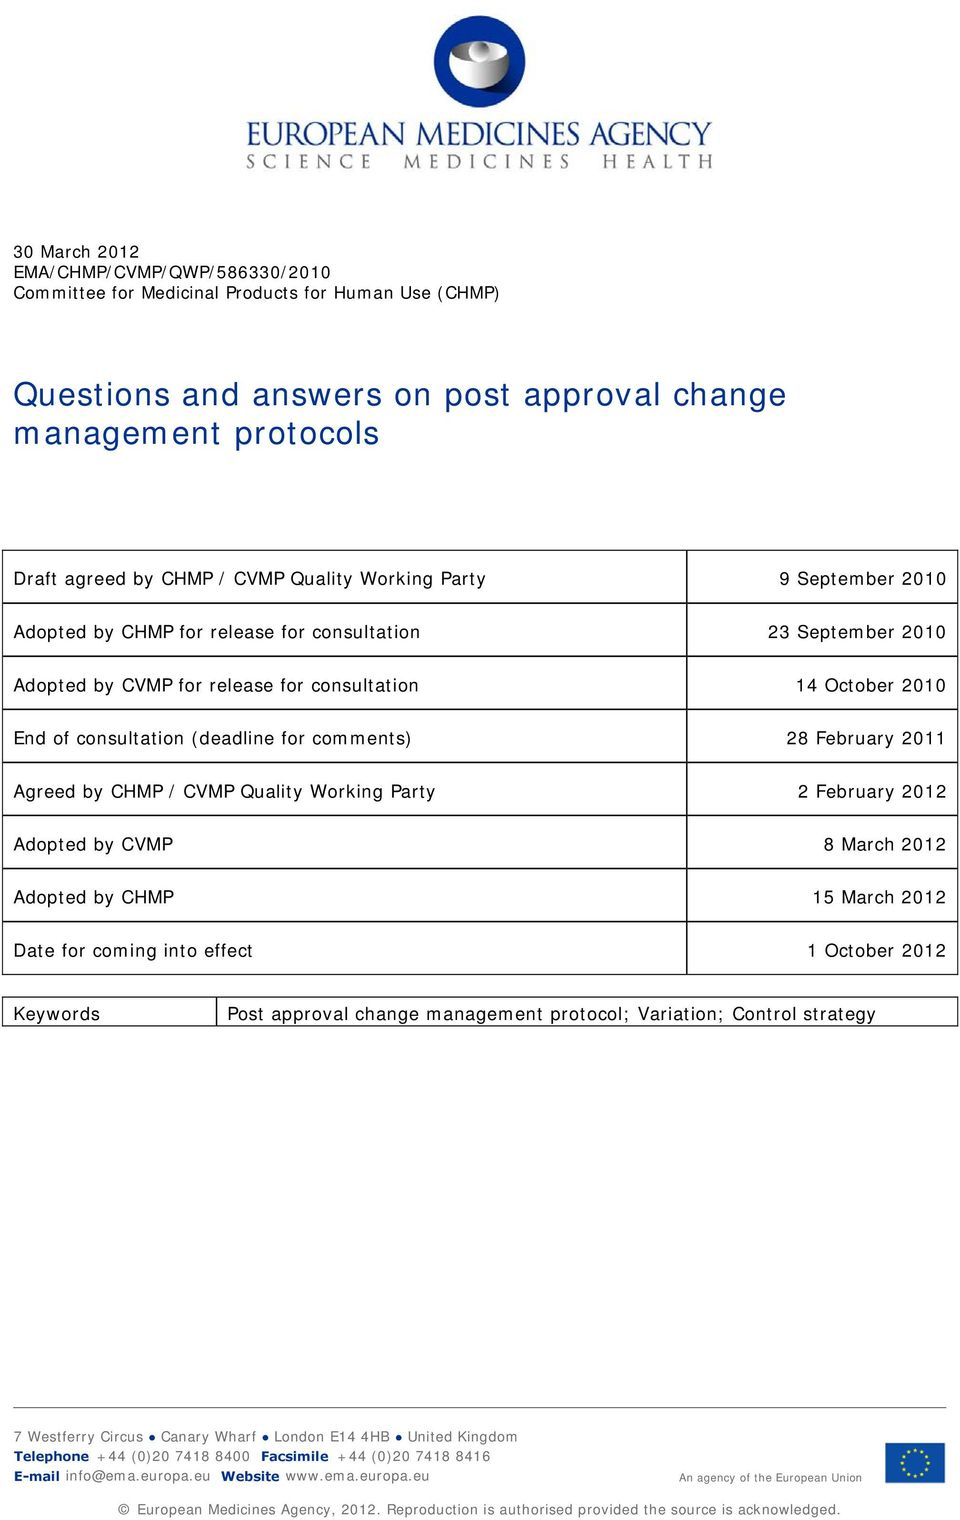 comments) 28 February 2011 Agreed by CHMP / CVMP Quality Working Party 2 February 2012 Adopted by CVMP 8 March 2012 Adopted by CHMP 15 March 2012 Date for coming into effect 1 October 2012 Keywords